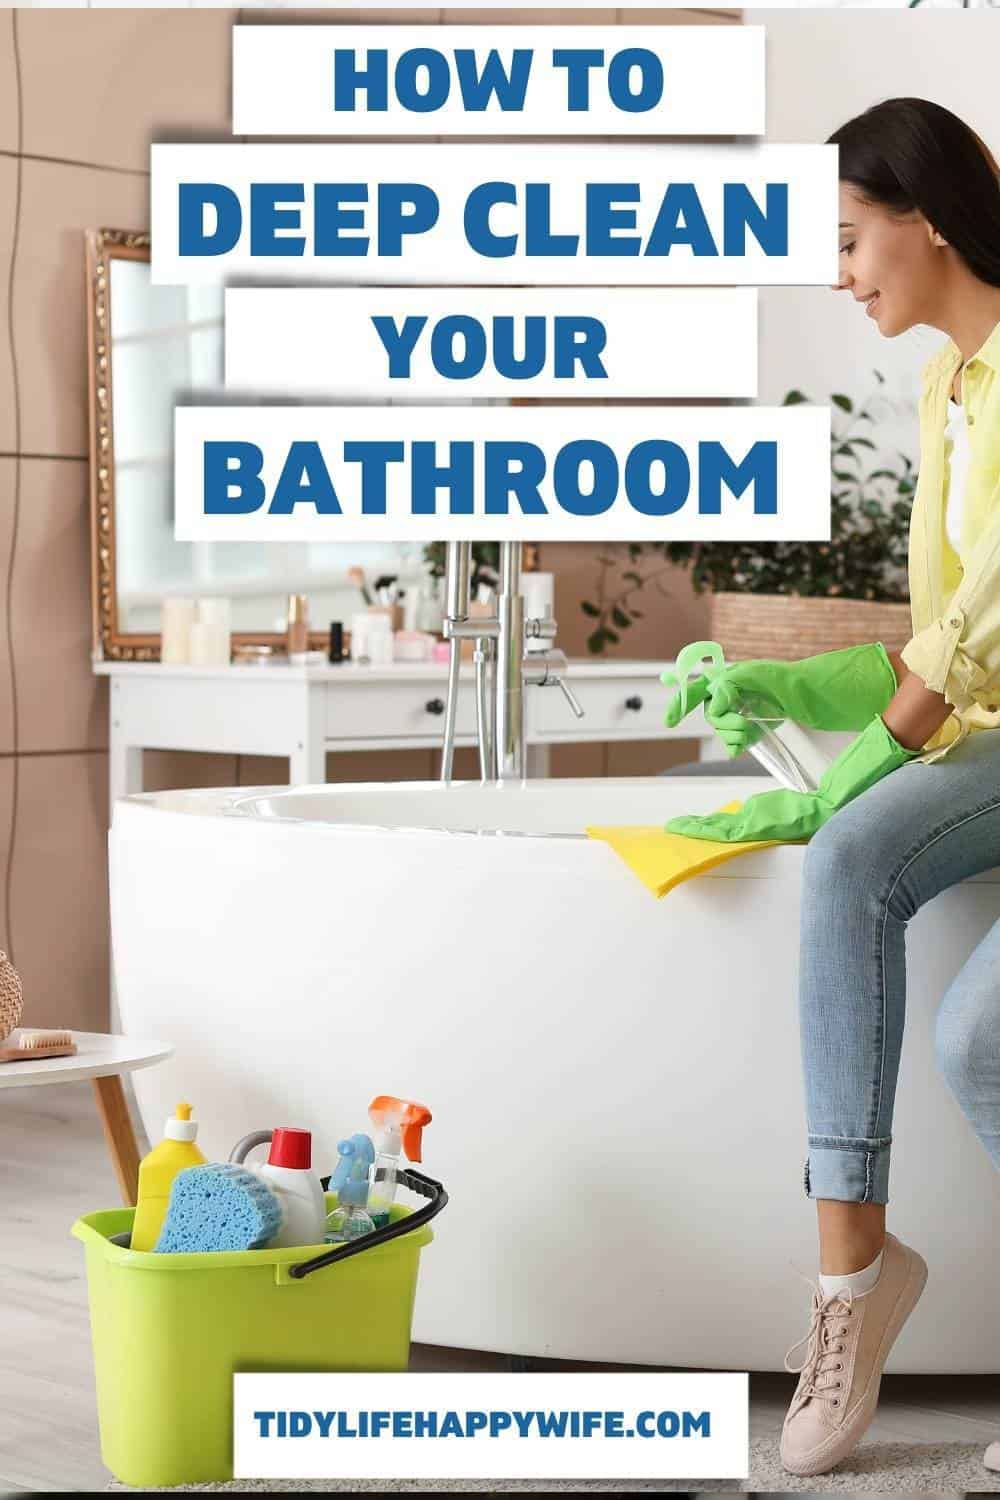 Smelly bathroom? It must be time to disinfect and deep clean your bathroom. Here's a step-by-step process to get your  bathroom sparkling clean in less than 60 minutes. Bathroom cleaning tips for your most stubborn stains and toughest messes. Bathroom cleaning hacks for those tricky spots. Get rid of that musty, urine smell and hard water buildup that makes your bathroom look and smell dirty. via @Tidylifehappywife